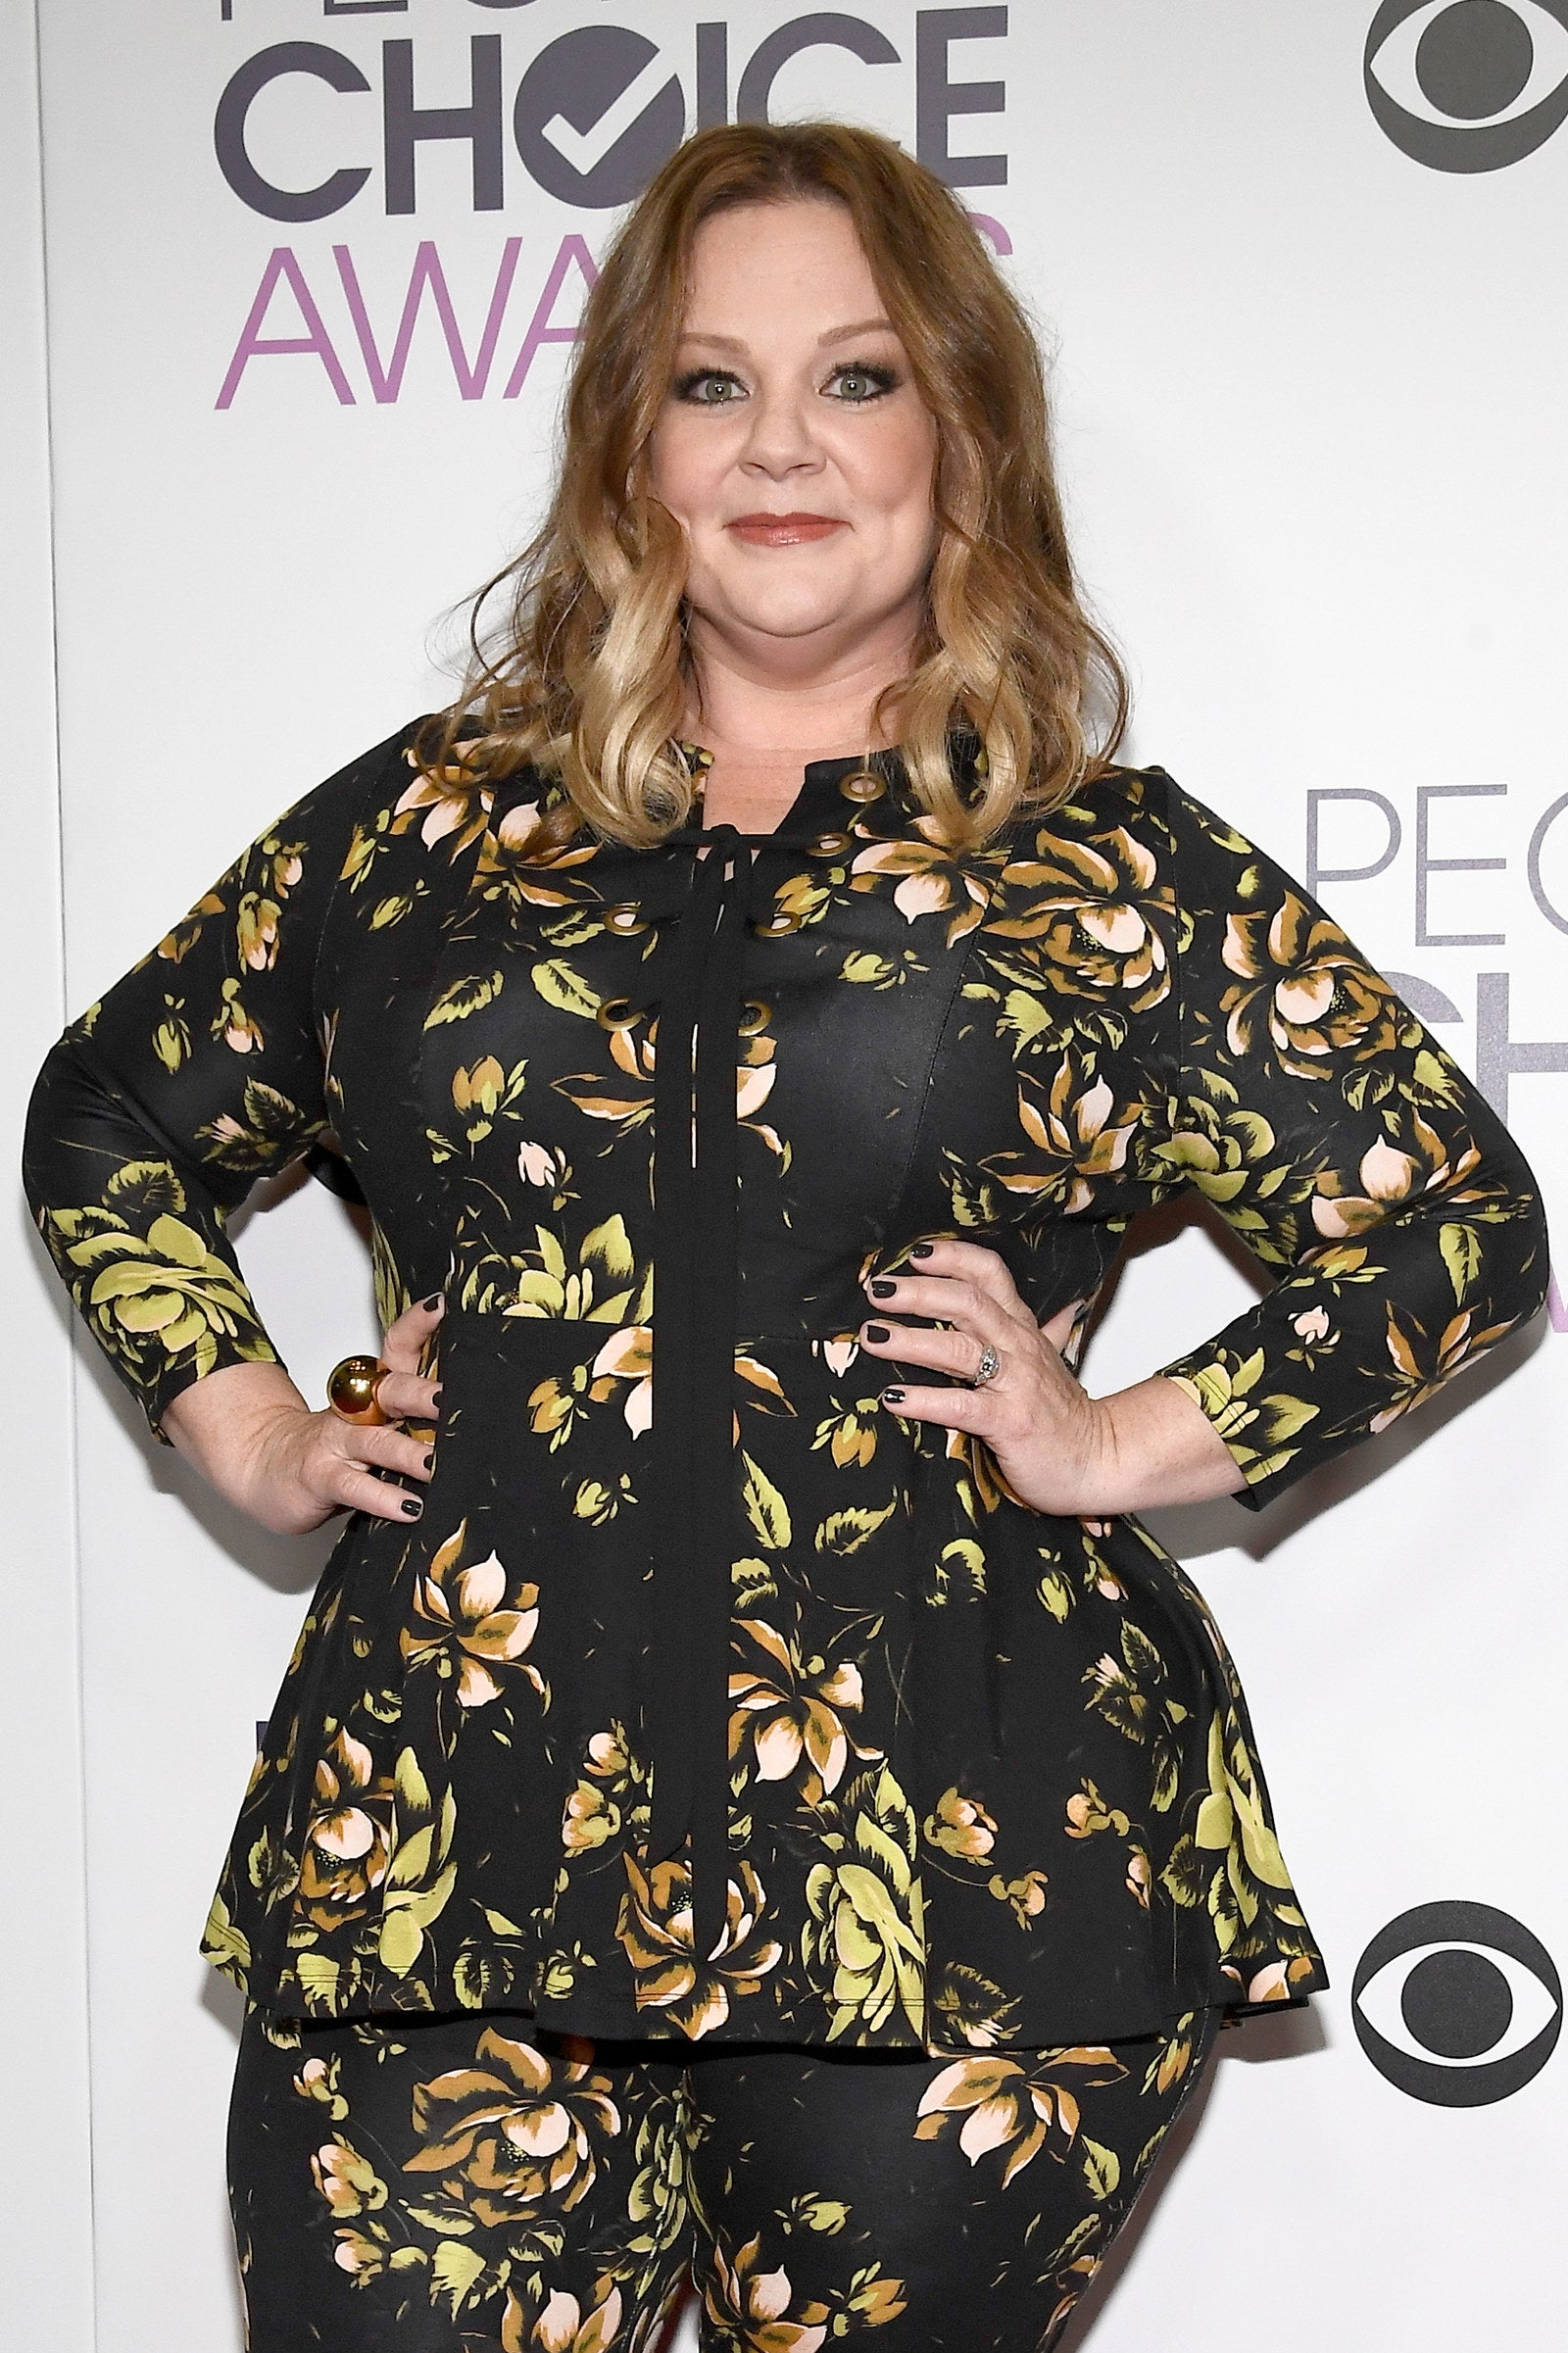 Melissa McCarthy told Redbook that she couldn't find any designers to dress her for the Oscars one year. After asking five or six designers who all said no, the actress started her own label.